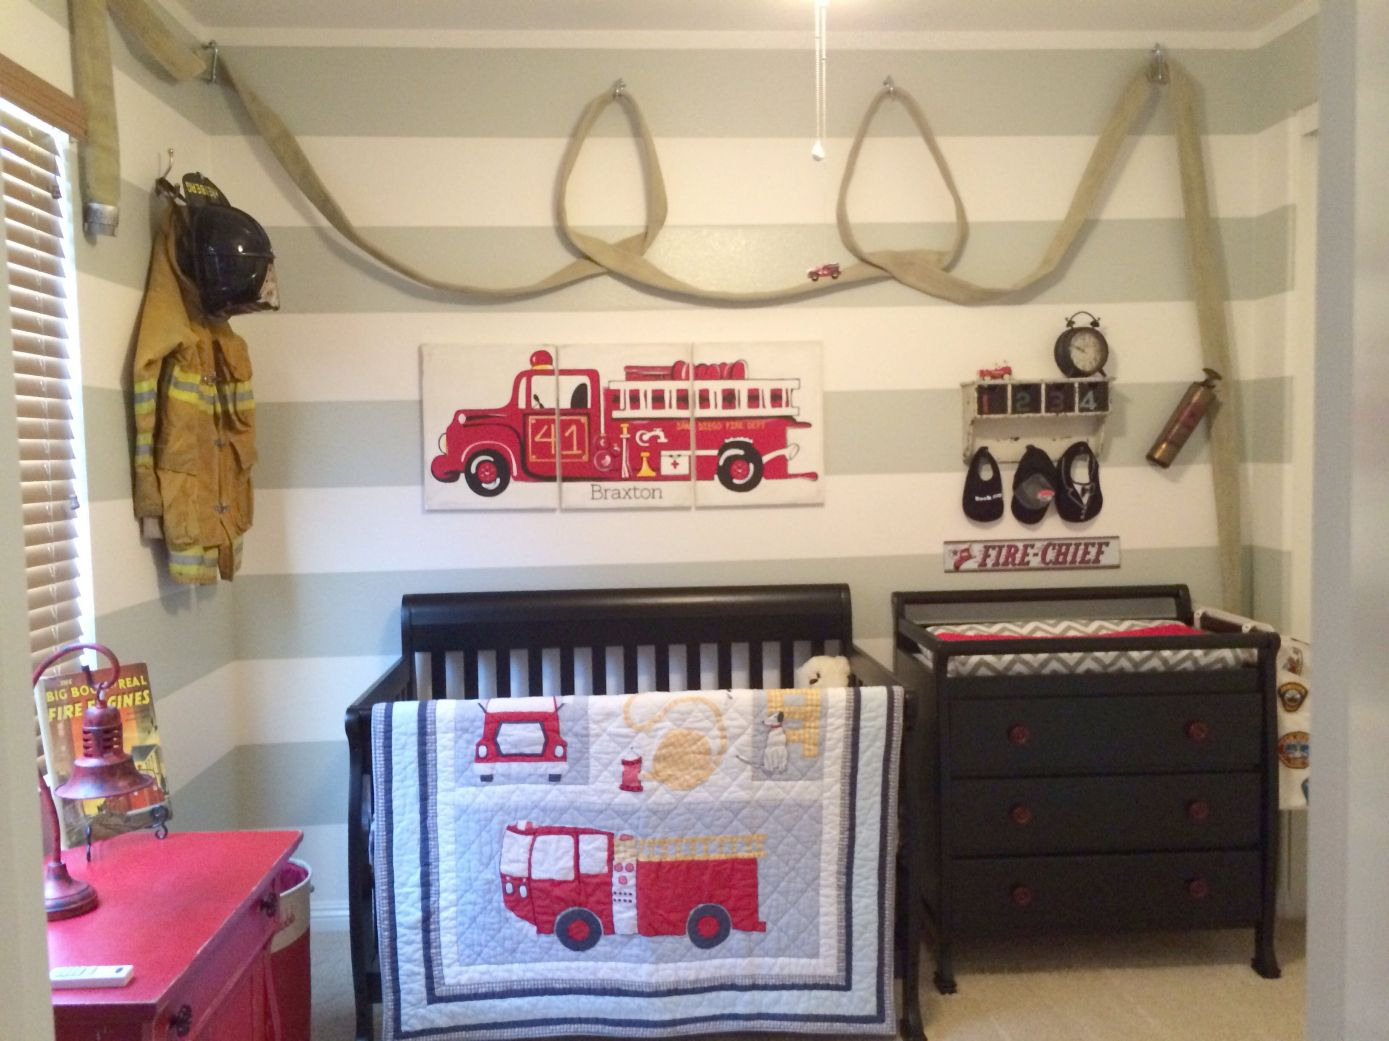 77 Fireman Bedroom Decor Best Interior Paint Brand Check More At Http